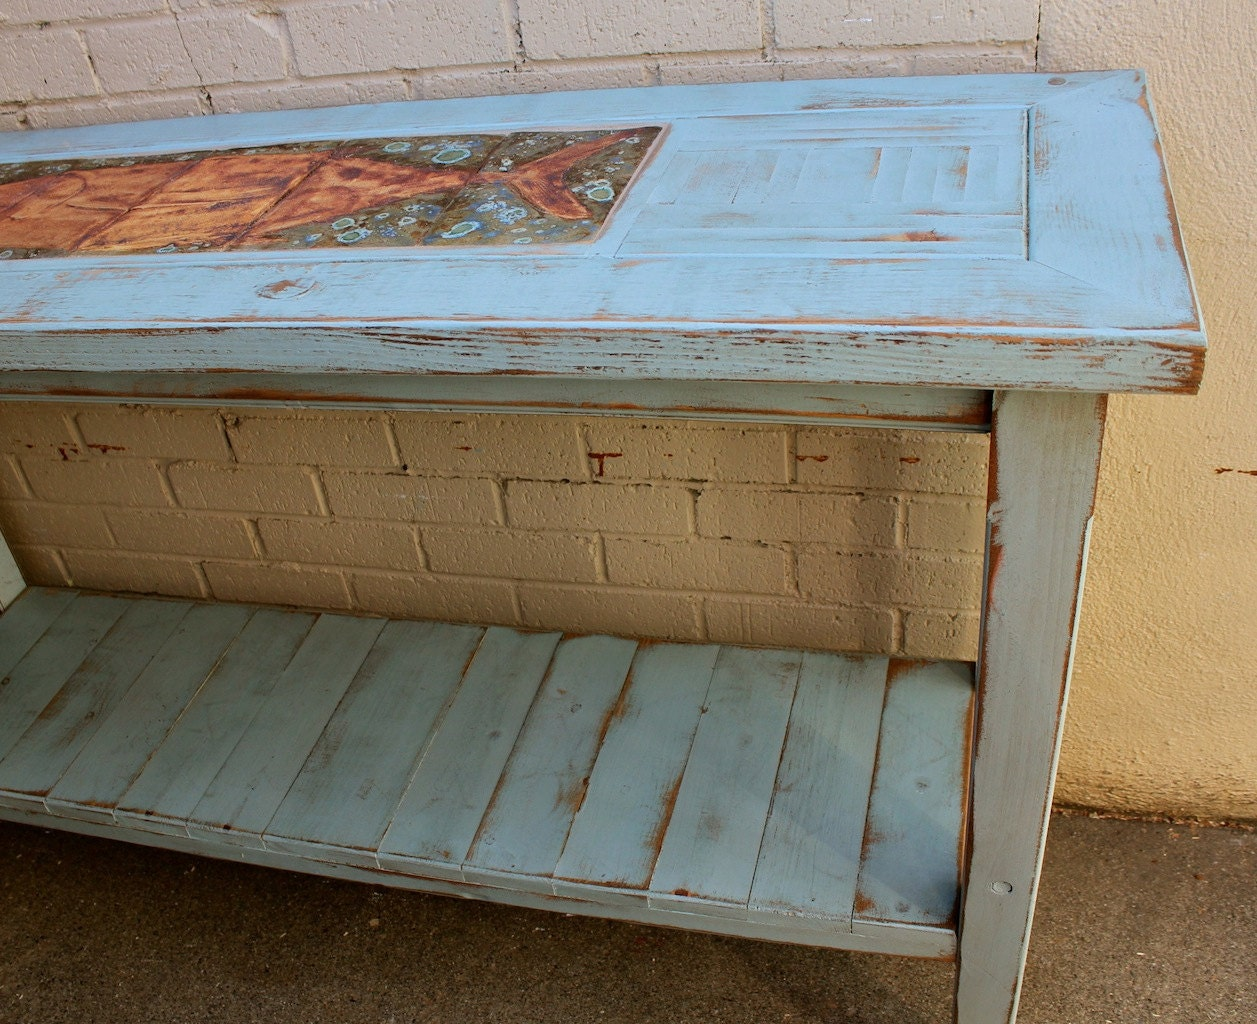 Handmade wood furniture table shabby beach cottage Homemade wooden furniture